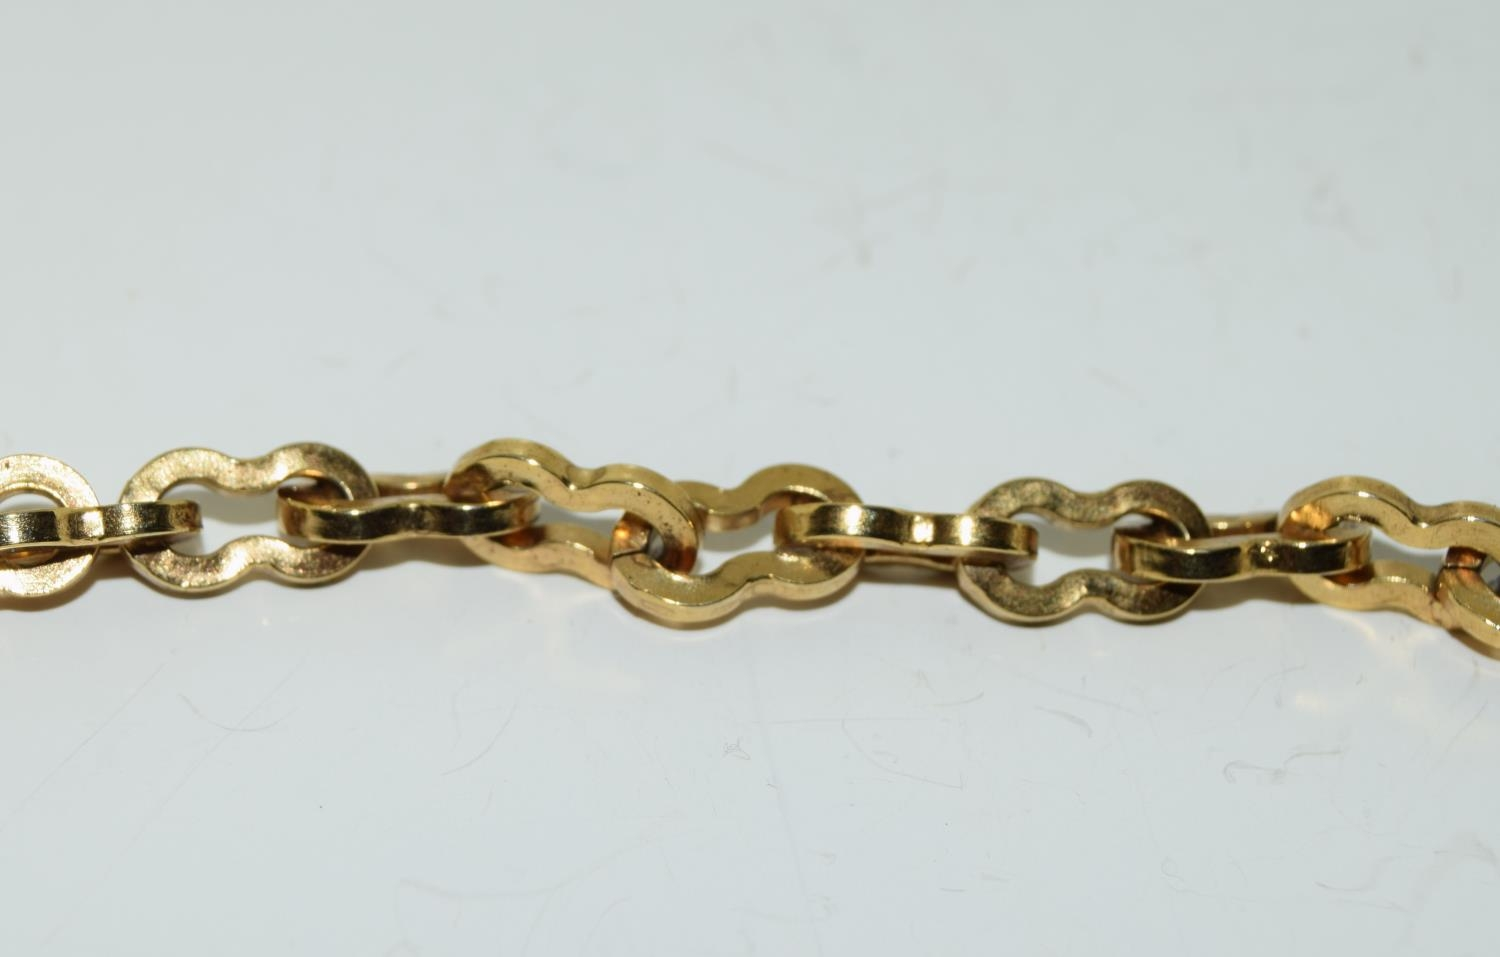 Gilded watch chain and fob set with a cabochon jade stone - Image 4 of 6